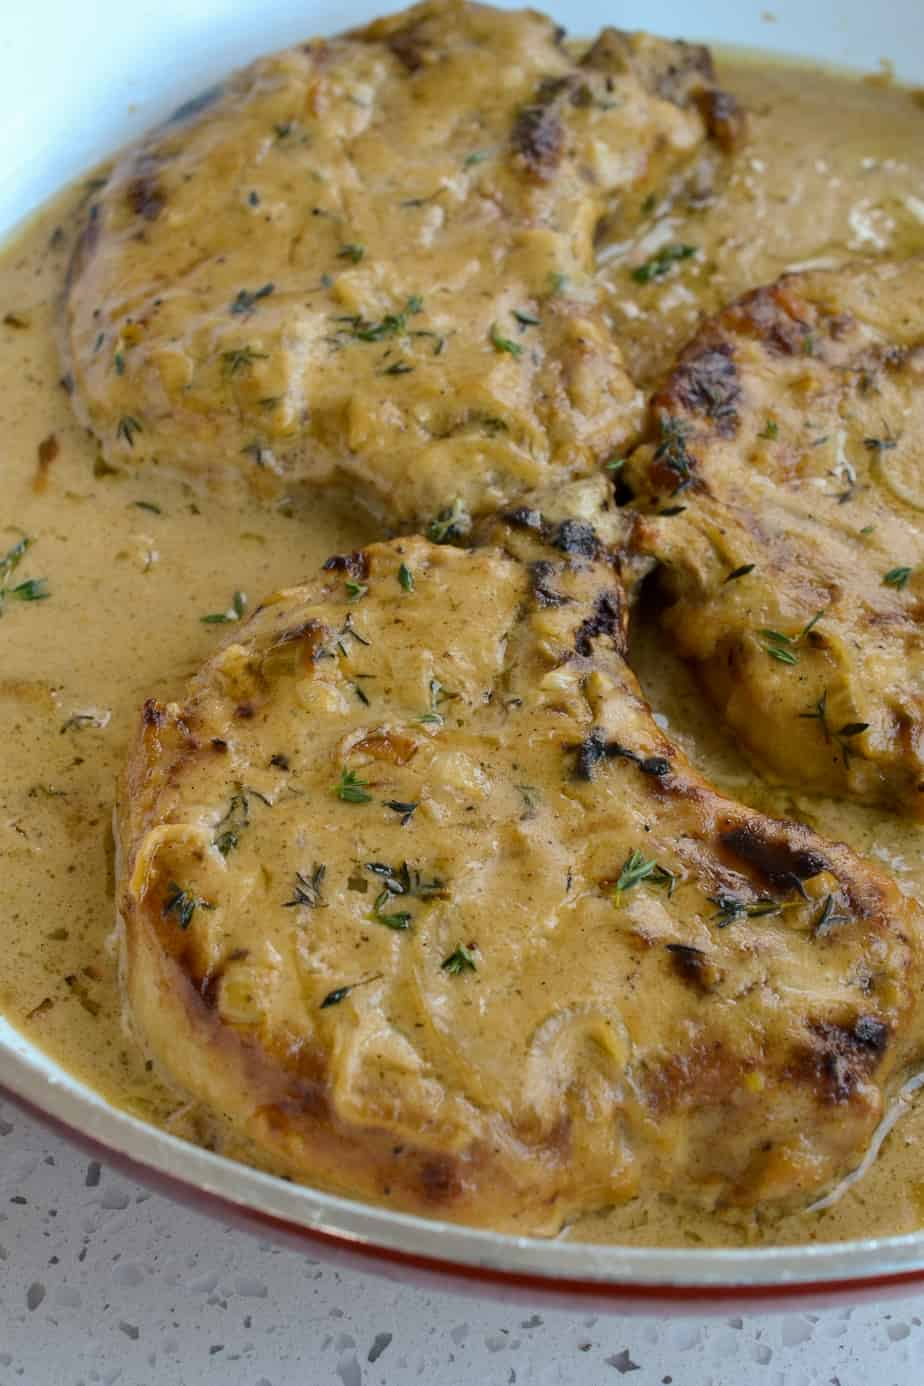 Pan fried pork chops smothered in gravy.